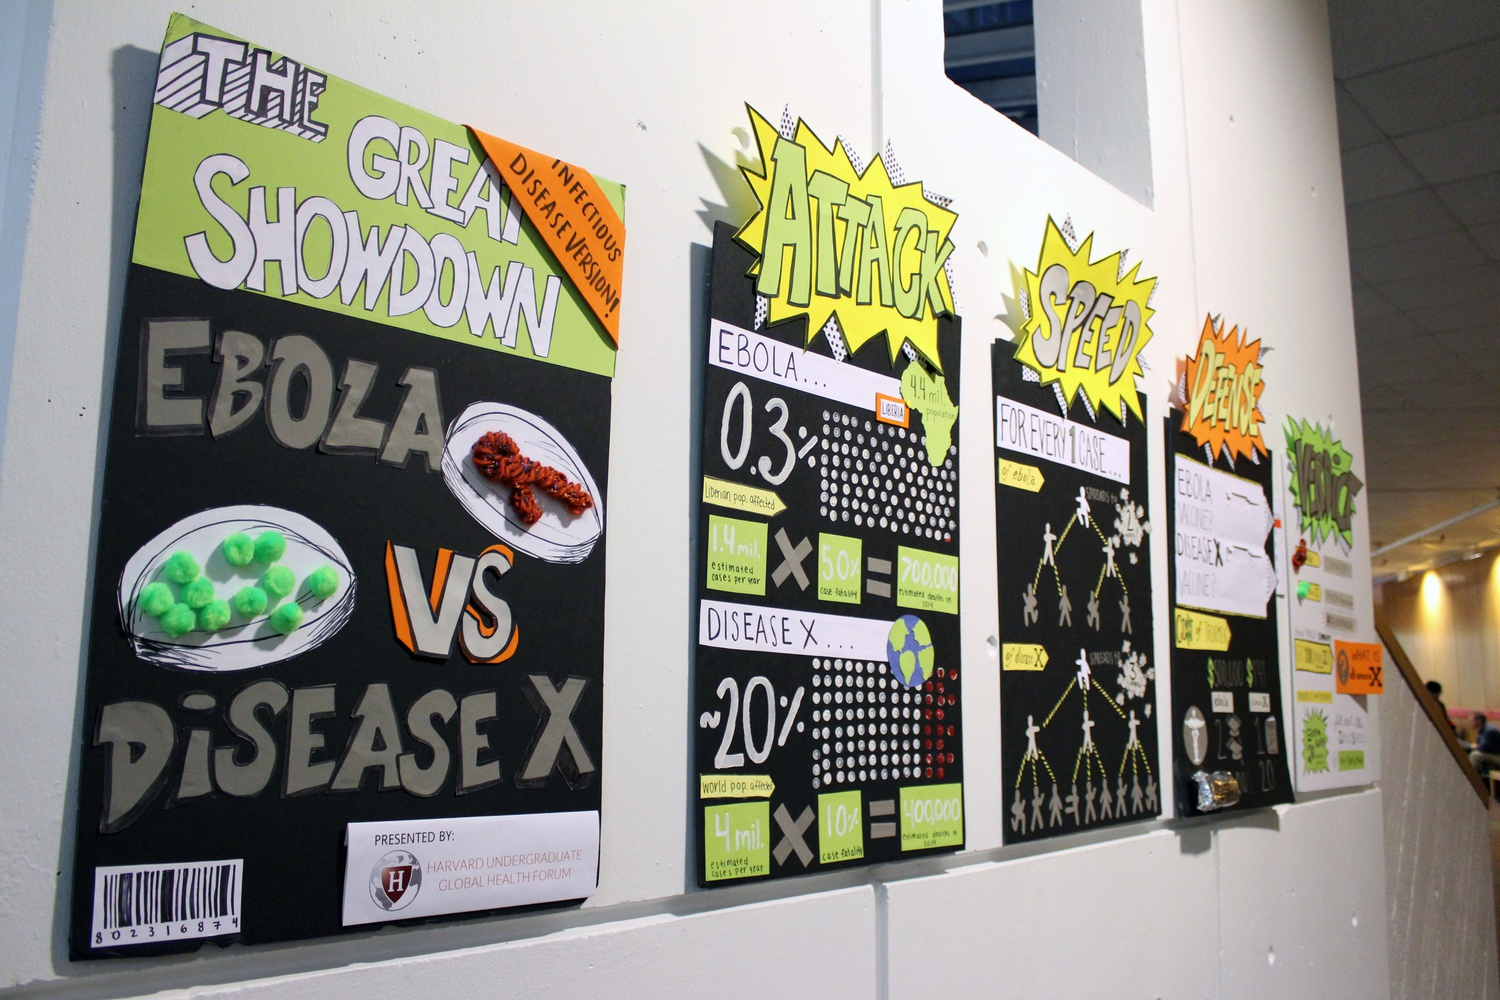 At the Science Center, the Harvard Undergraduate Global Health Forum presented the Emerging Epidemics Art Exhibit, which compared the Ebola virus to a more common, but deadly Disease X.